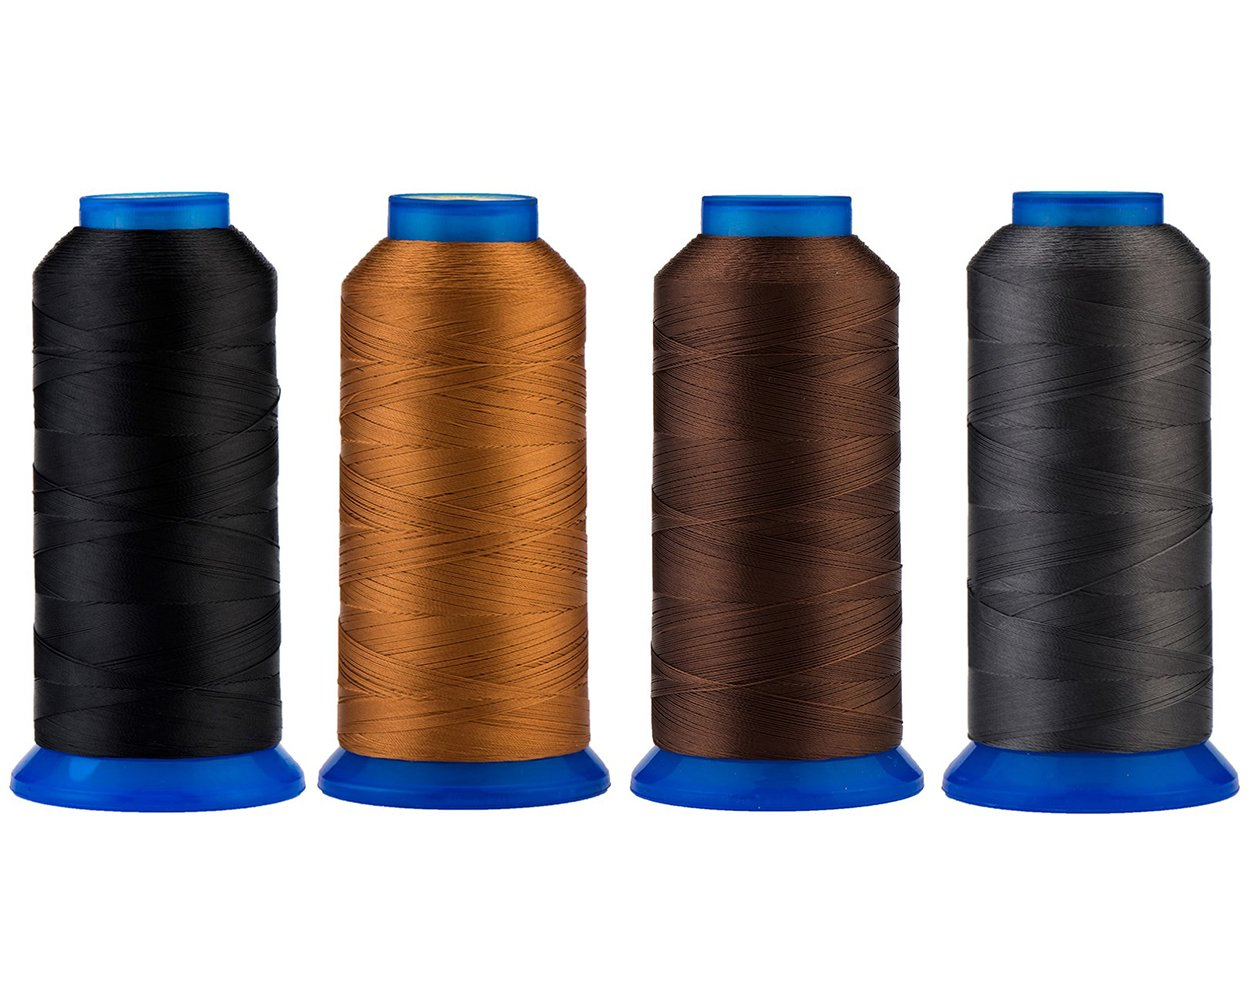 Selric Beading Royal Blue Leather UV Resistant High Strength Polyester Thread #69 T70 Size 210D//3 for Upholstery 1500Yards // 130g // 30 Colors Available Purses Drapery Outdoor Market